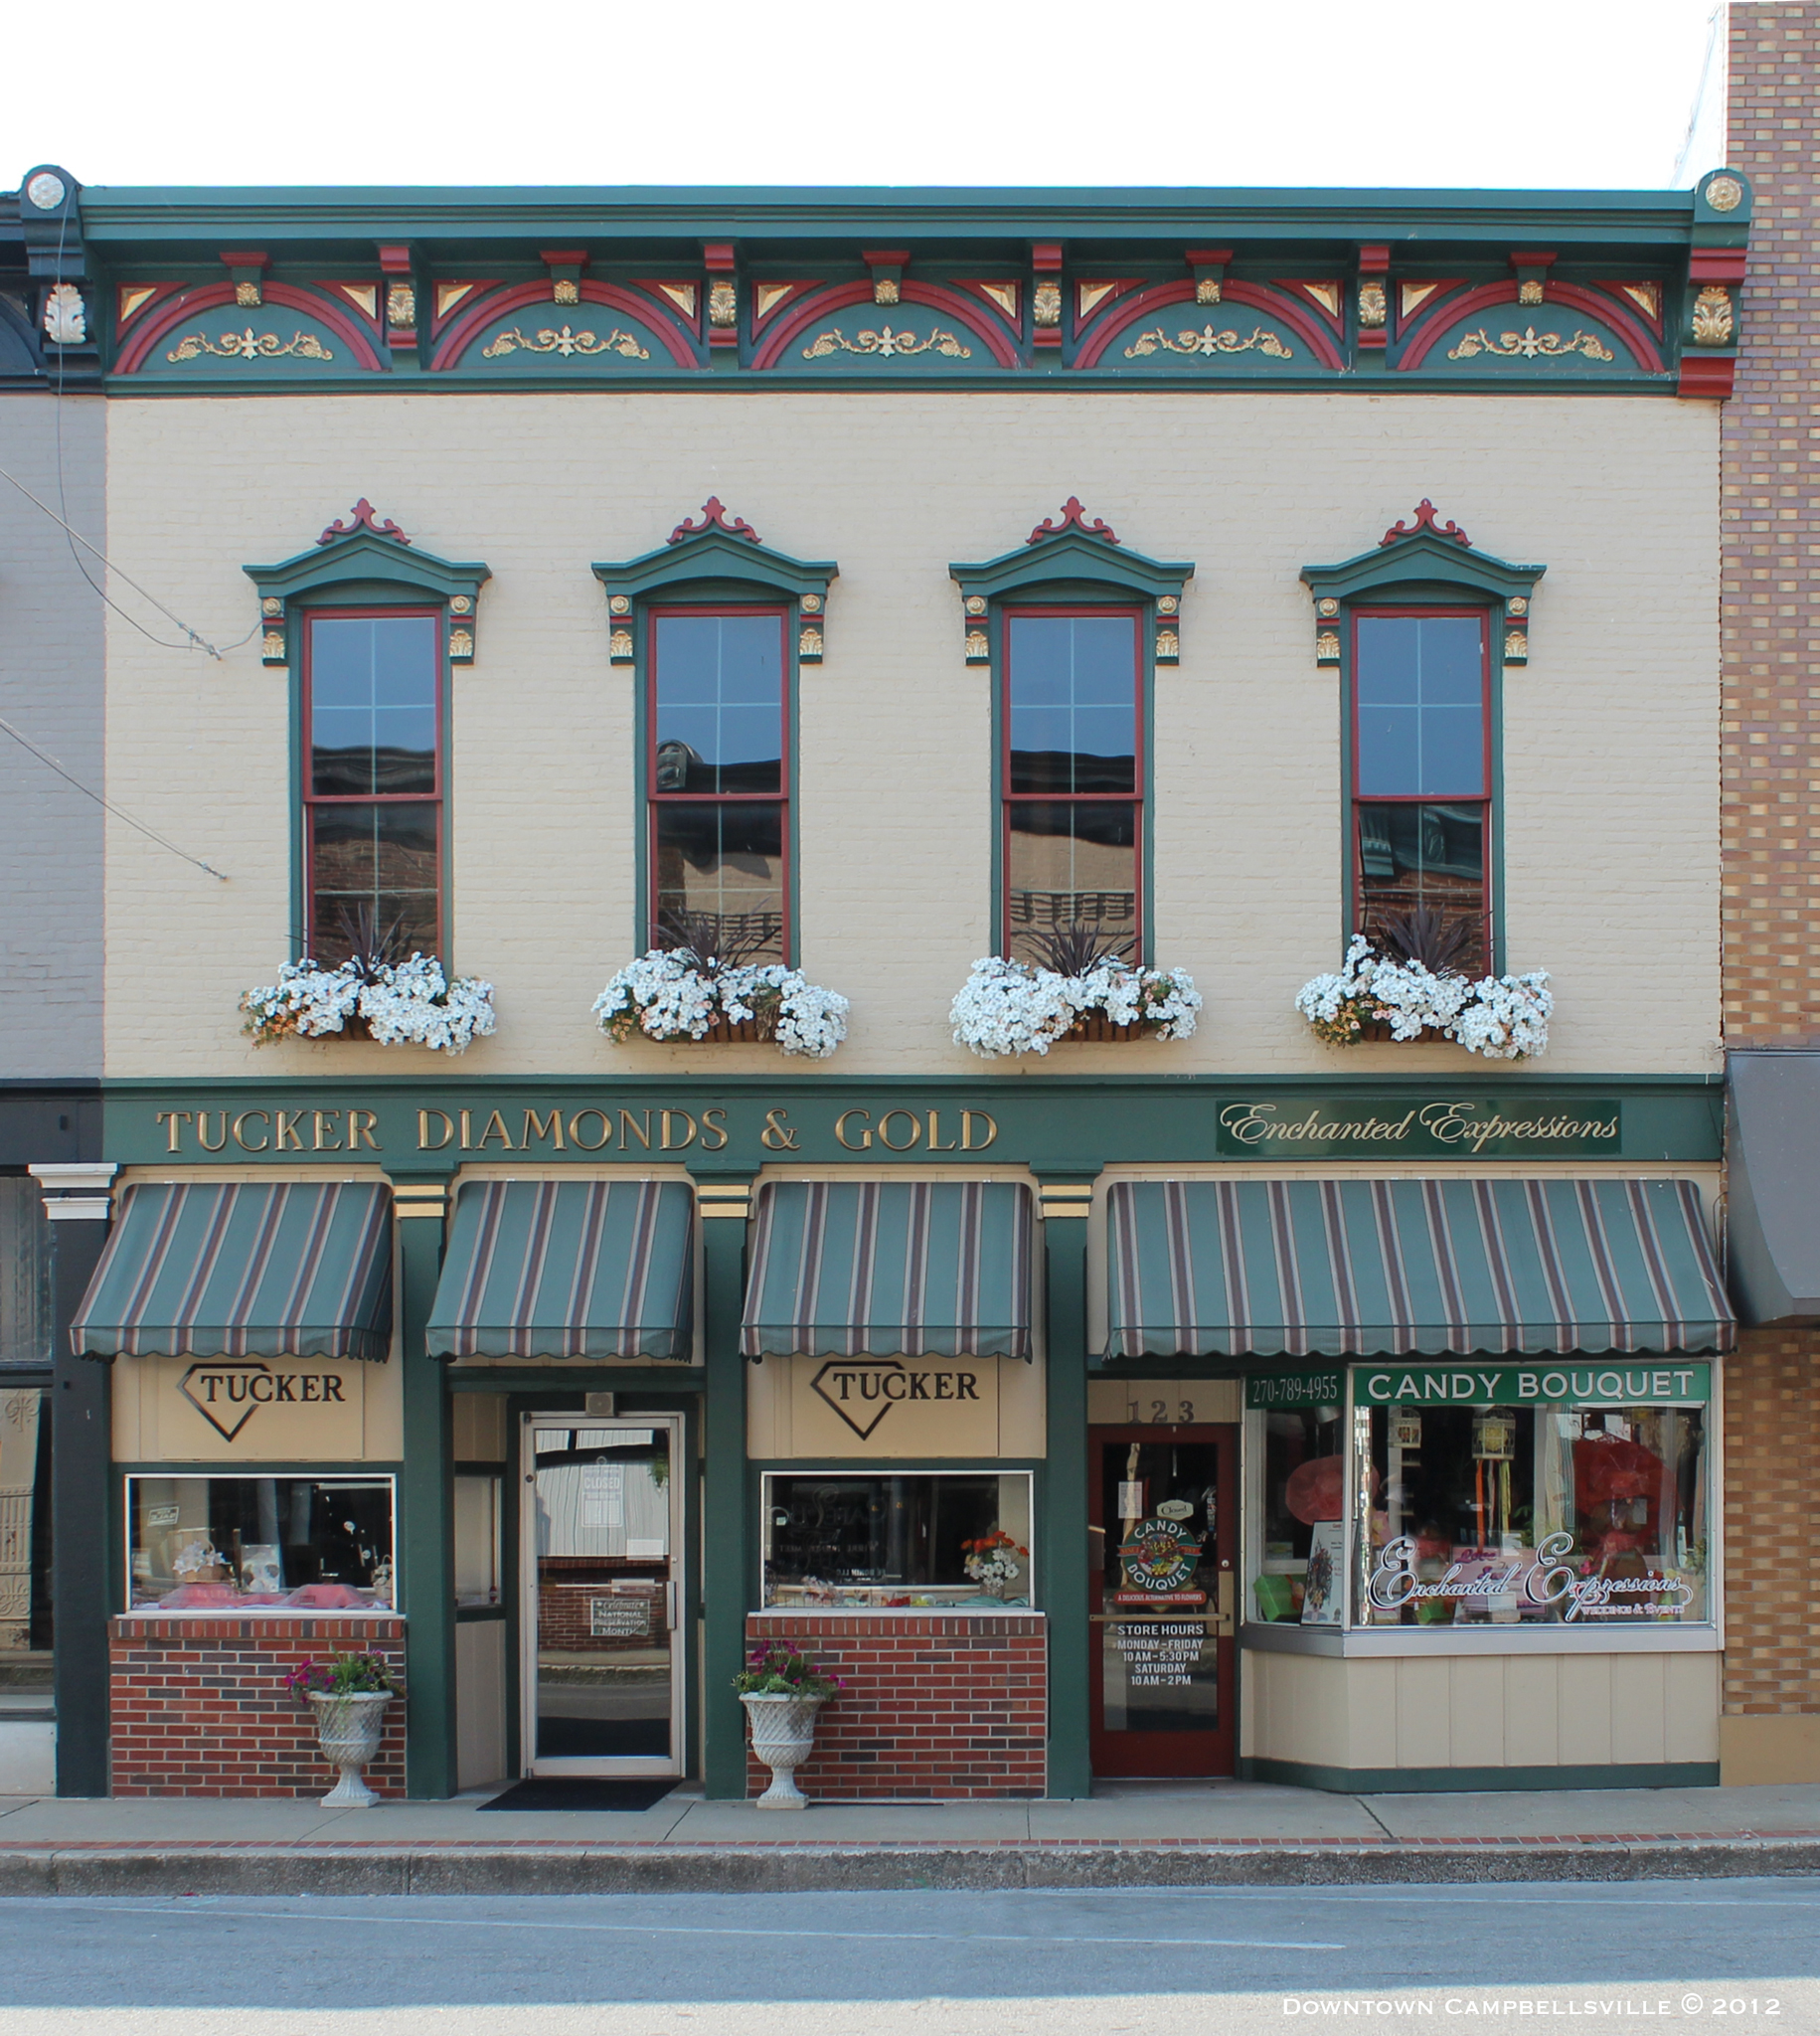 76 Best Images About Historic Downtown Storefronts On: Downtown Campbellsville